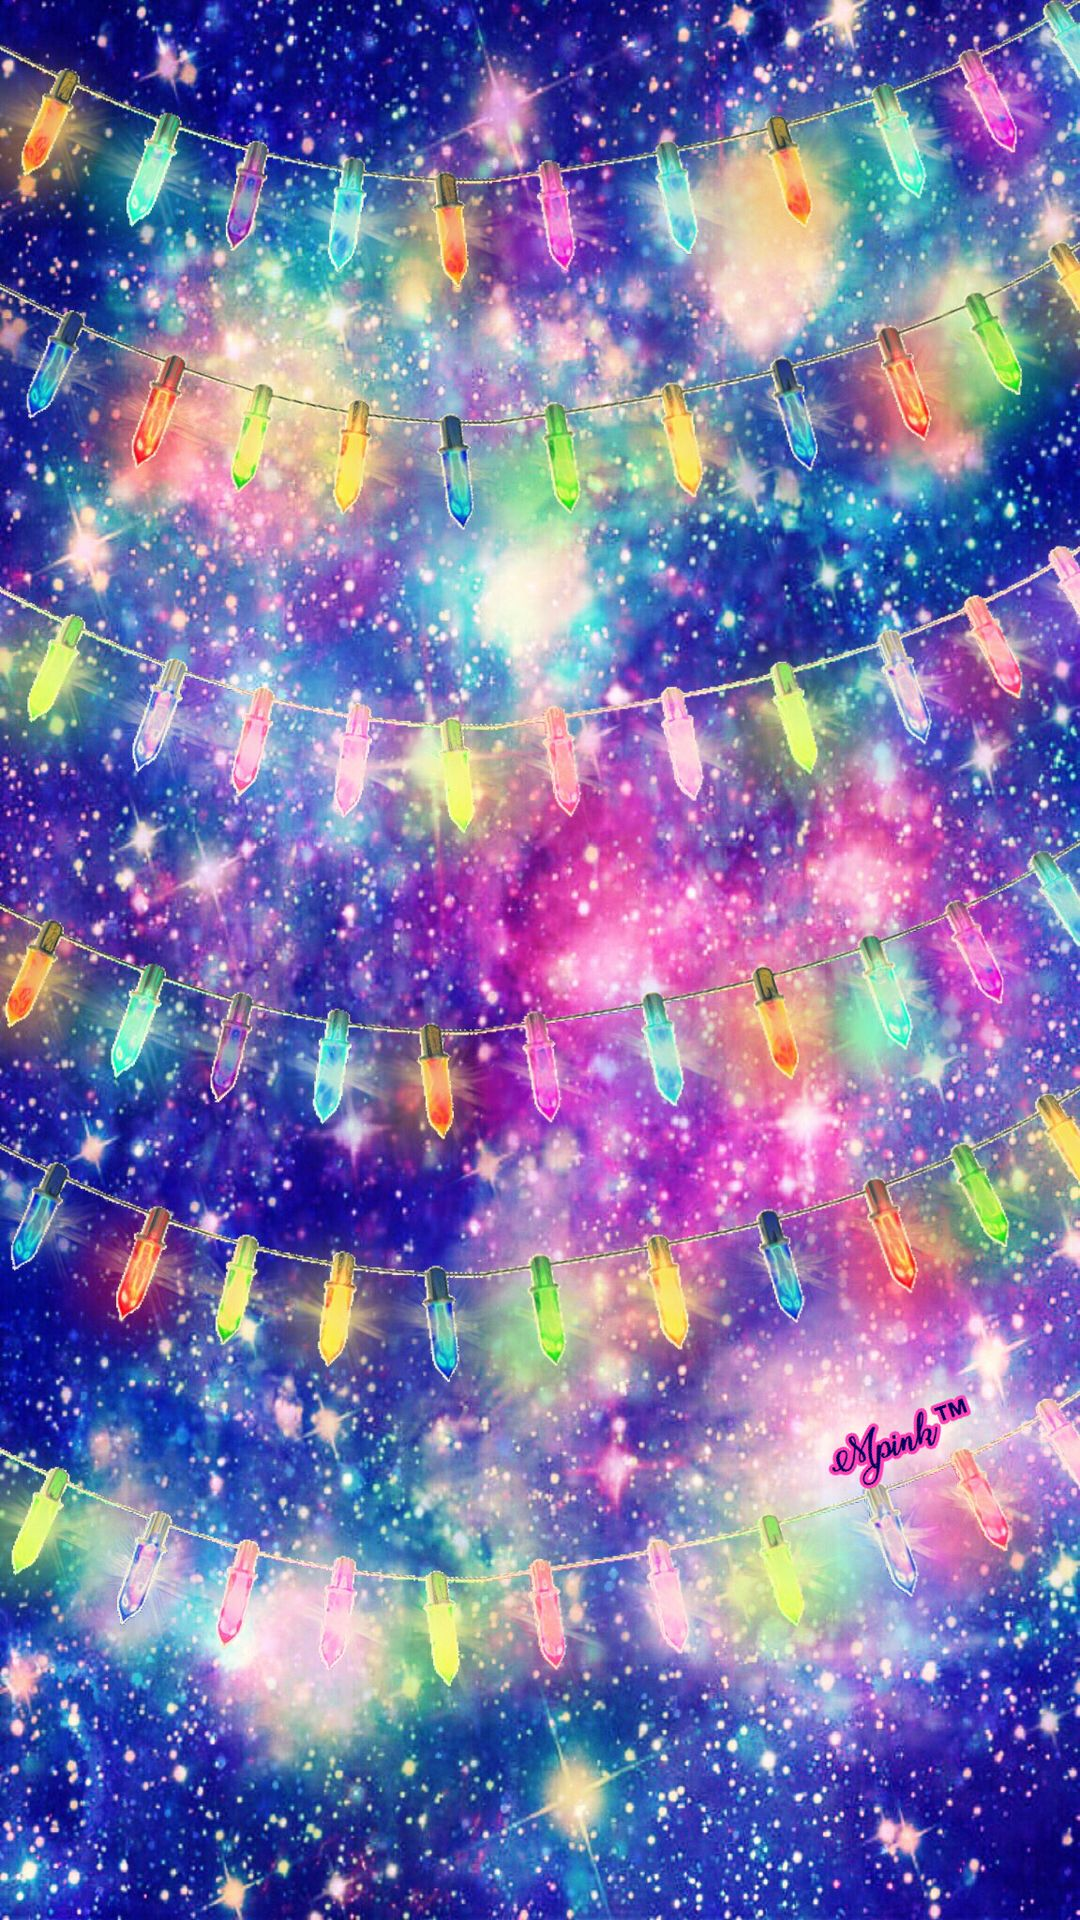 Christmas lights galaxy wallpaper androidwallpaper - Galaxy christmas wallpaper ...